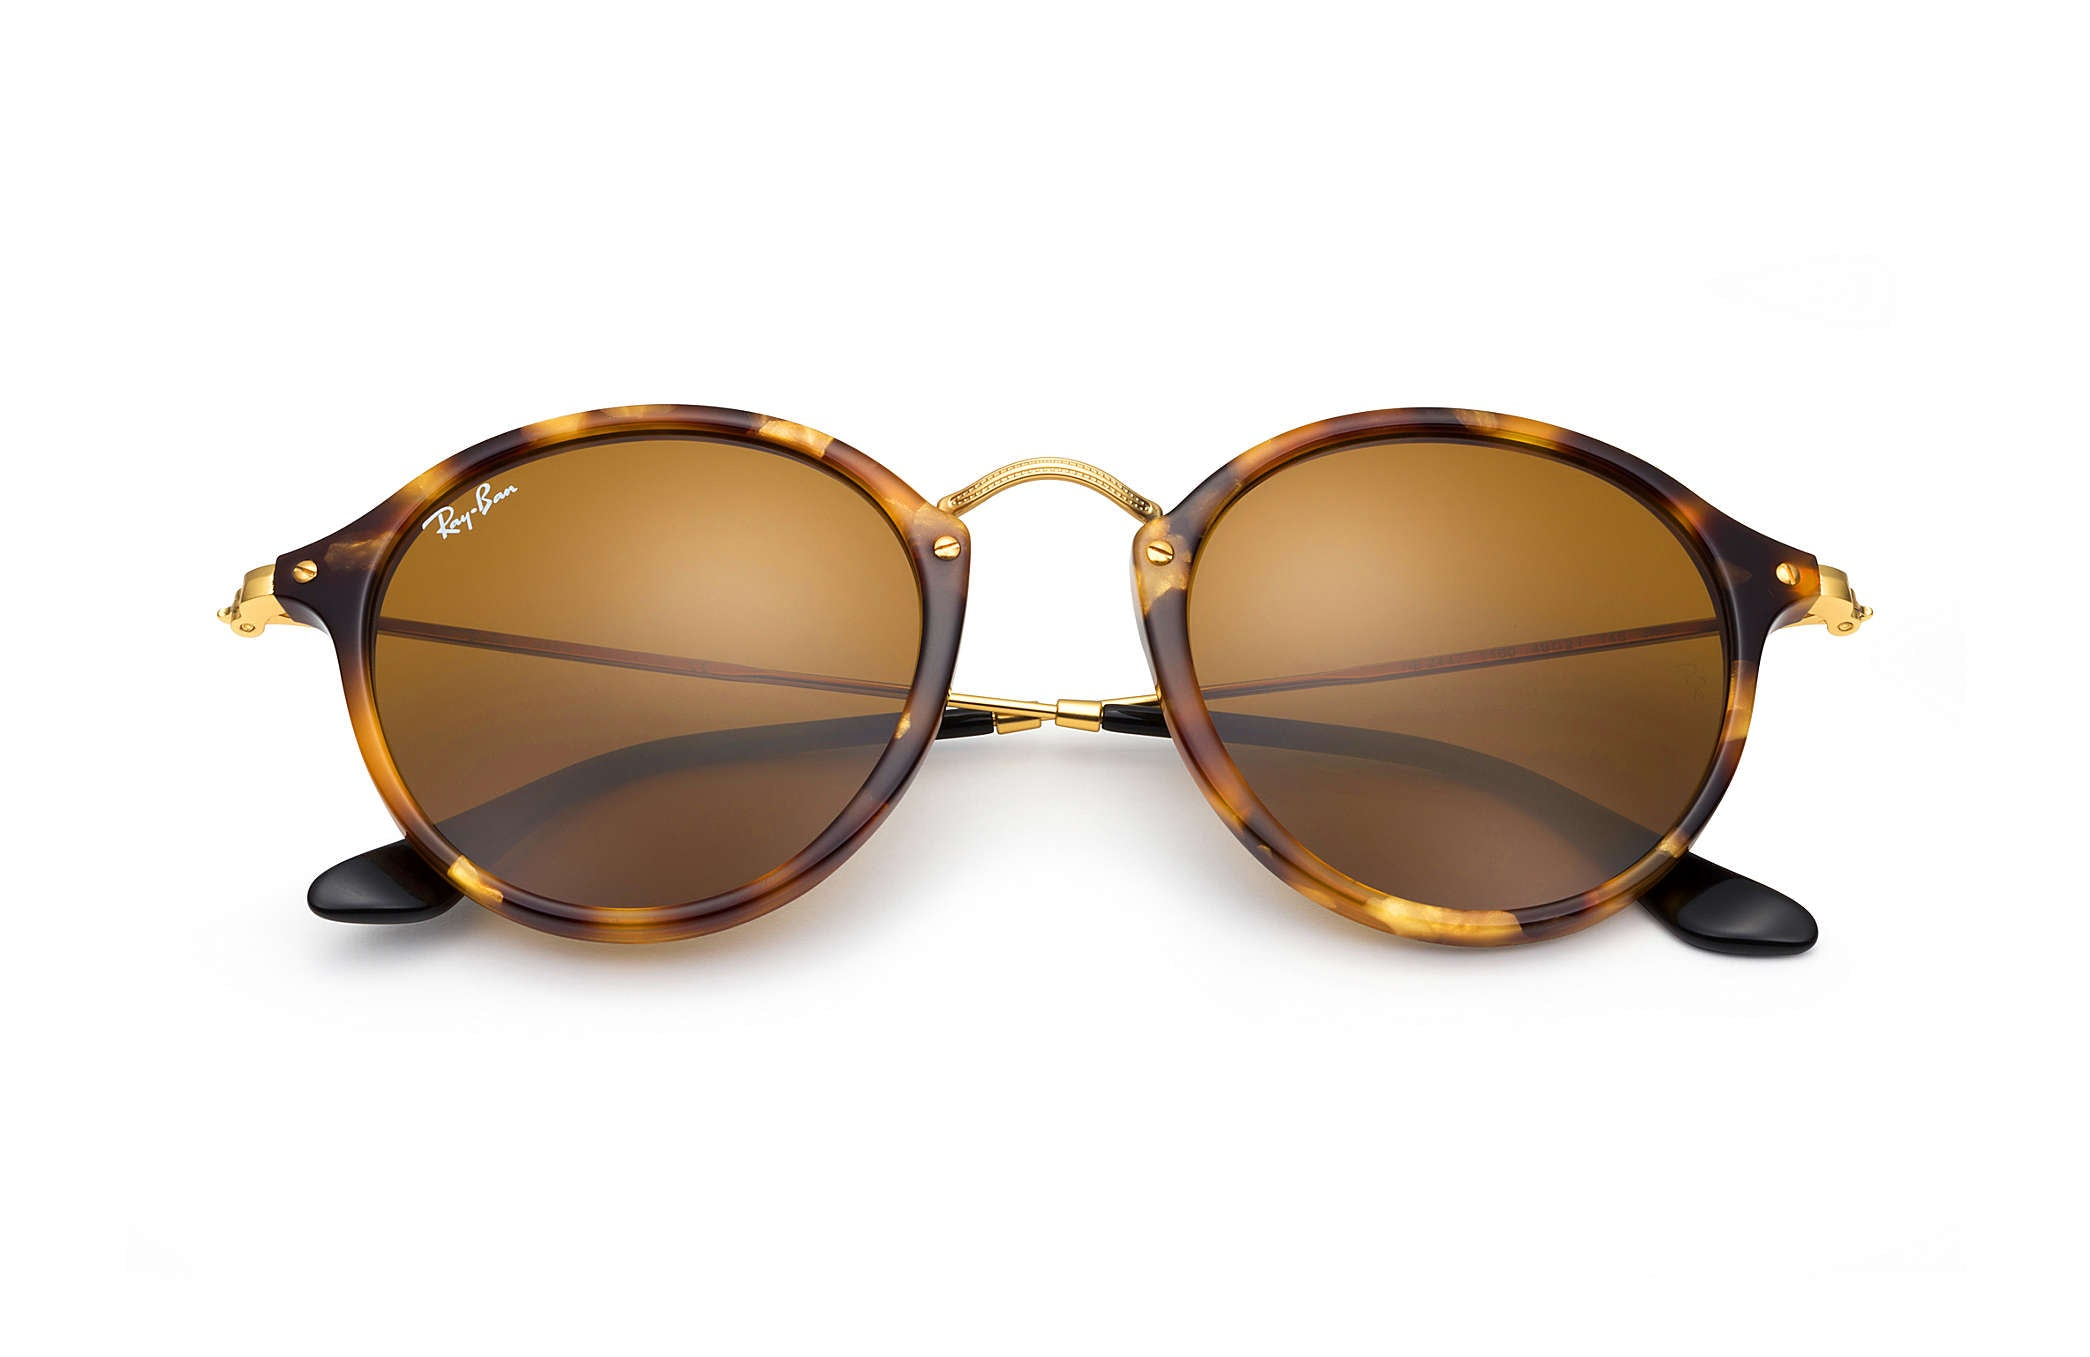 ROUND SUNGLASSES SPOTTED BROWN HAVANA TORTOISE - BROWN CLASSIC